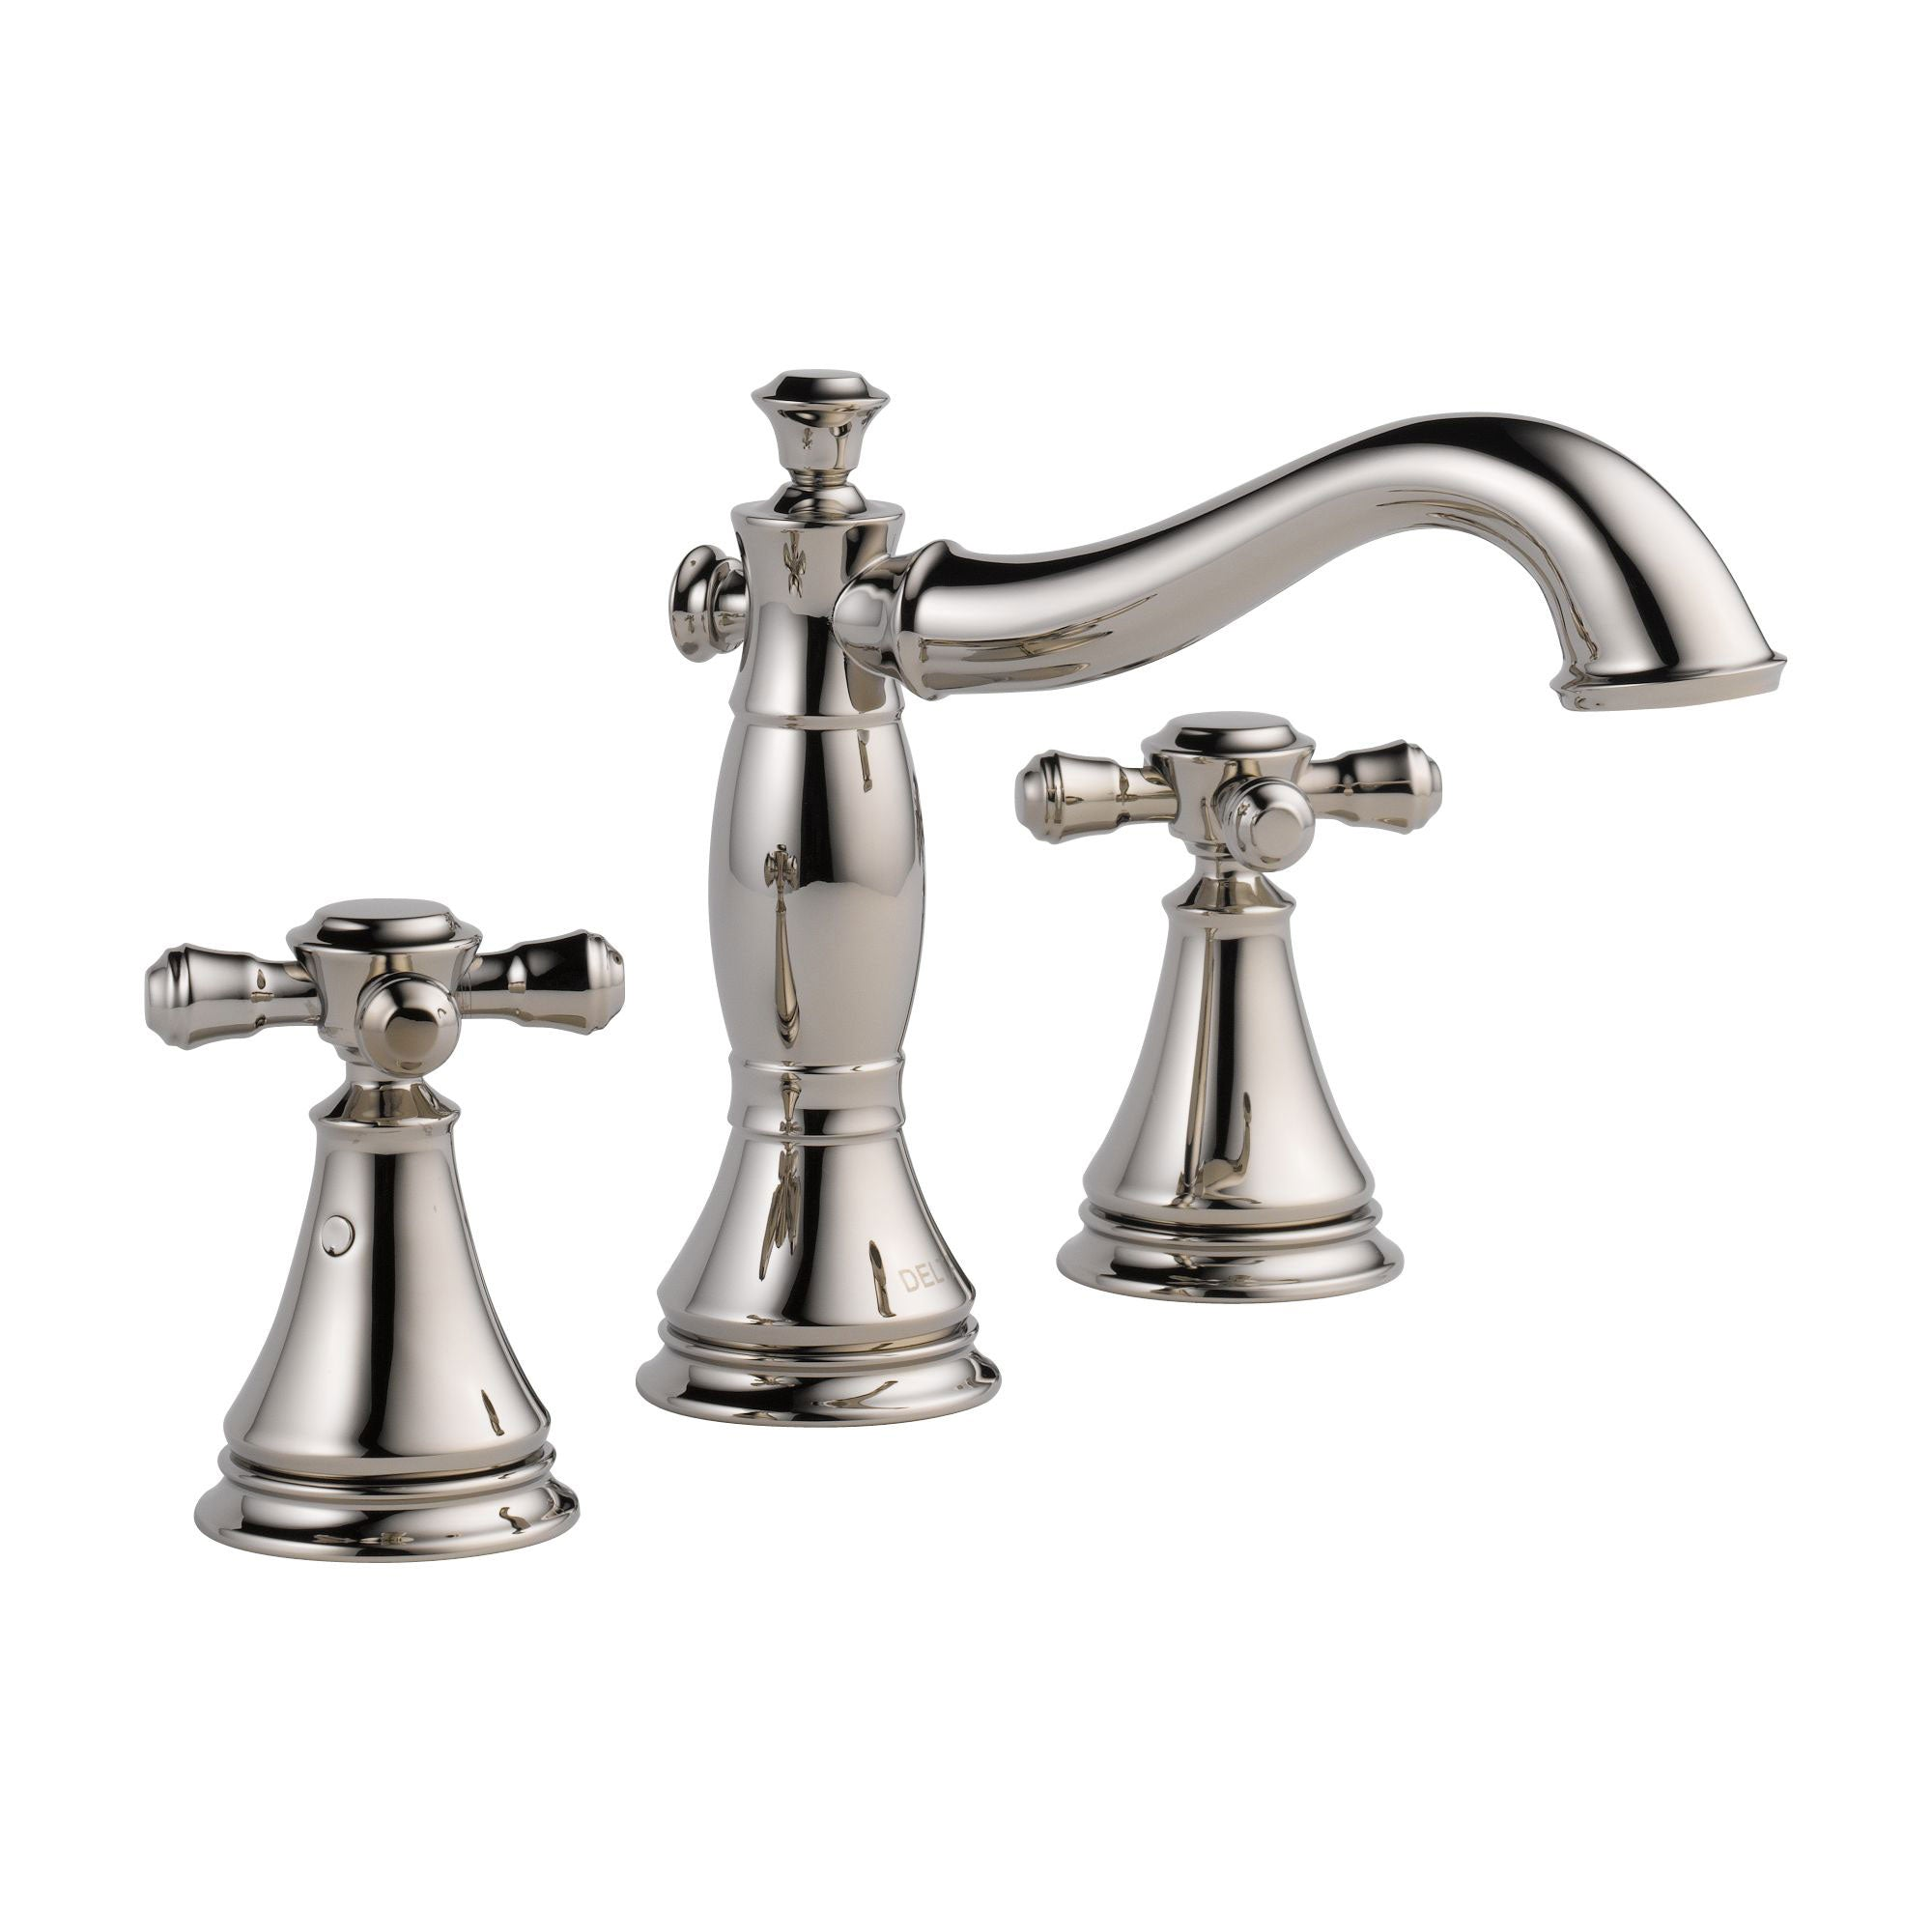 Delta Cassidy Polished Nickel Finish Wide Spread Lavatory Bathroom Sink Faucet INCLUDES Two Cross Handles and Matching Metal Pop-Up Drain D1307V